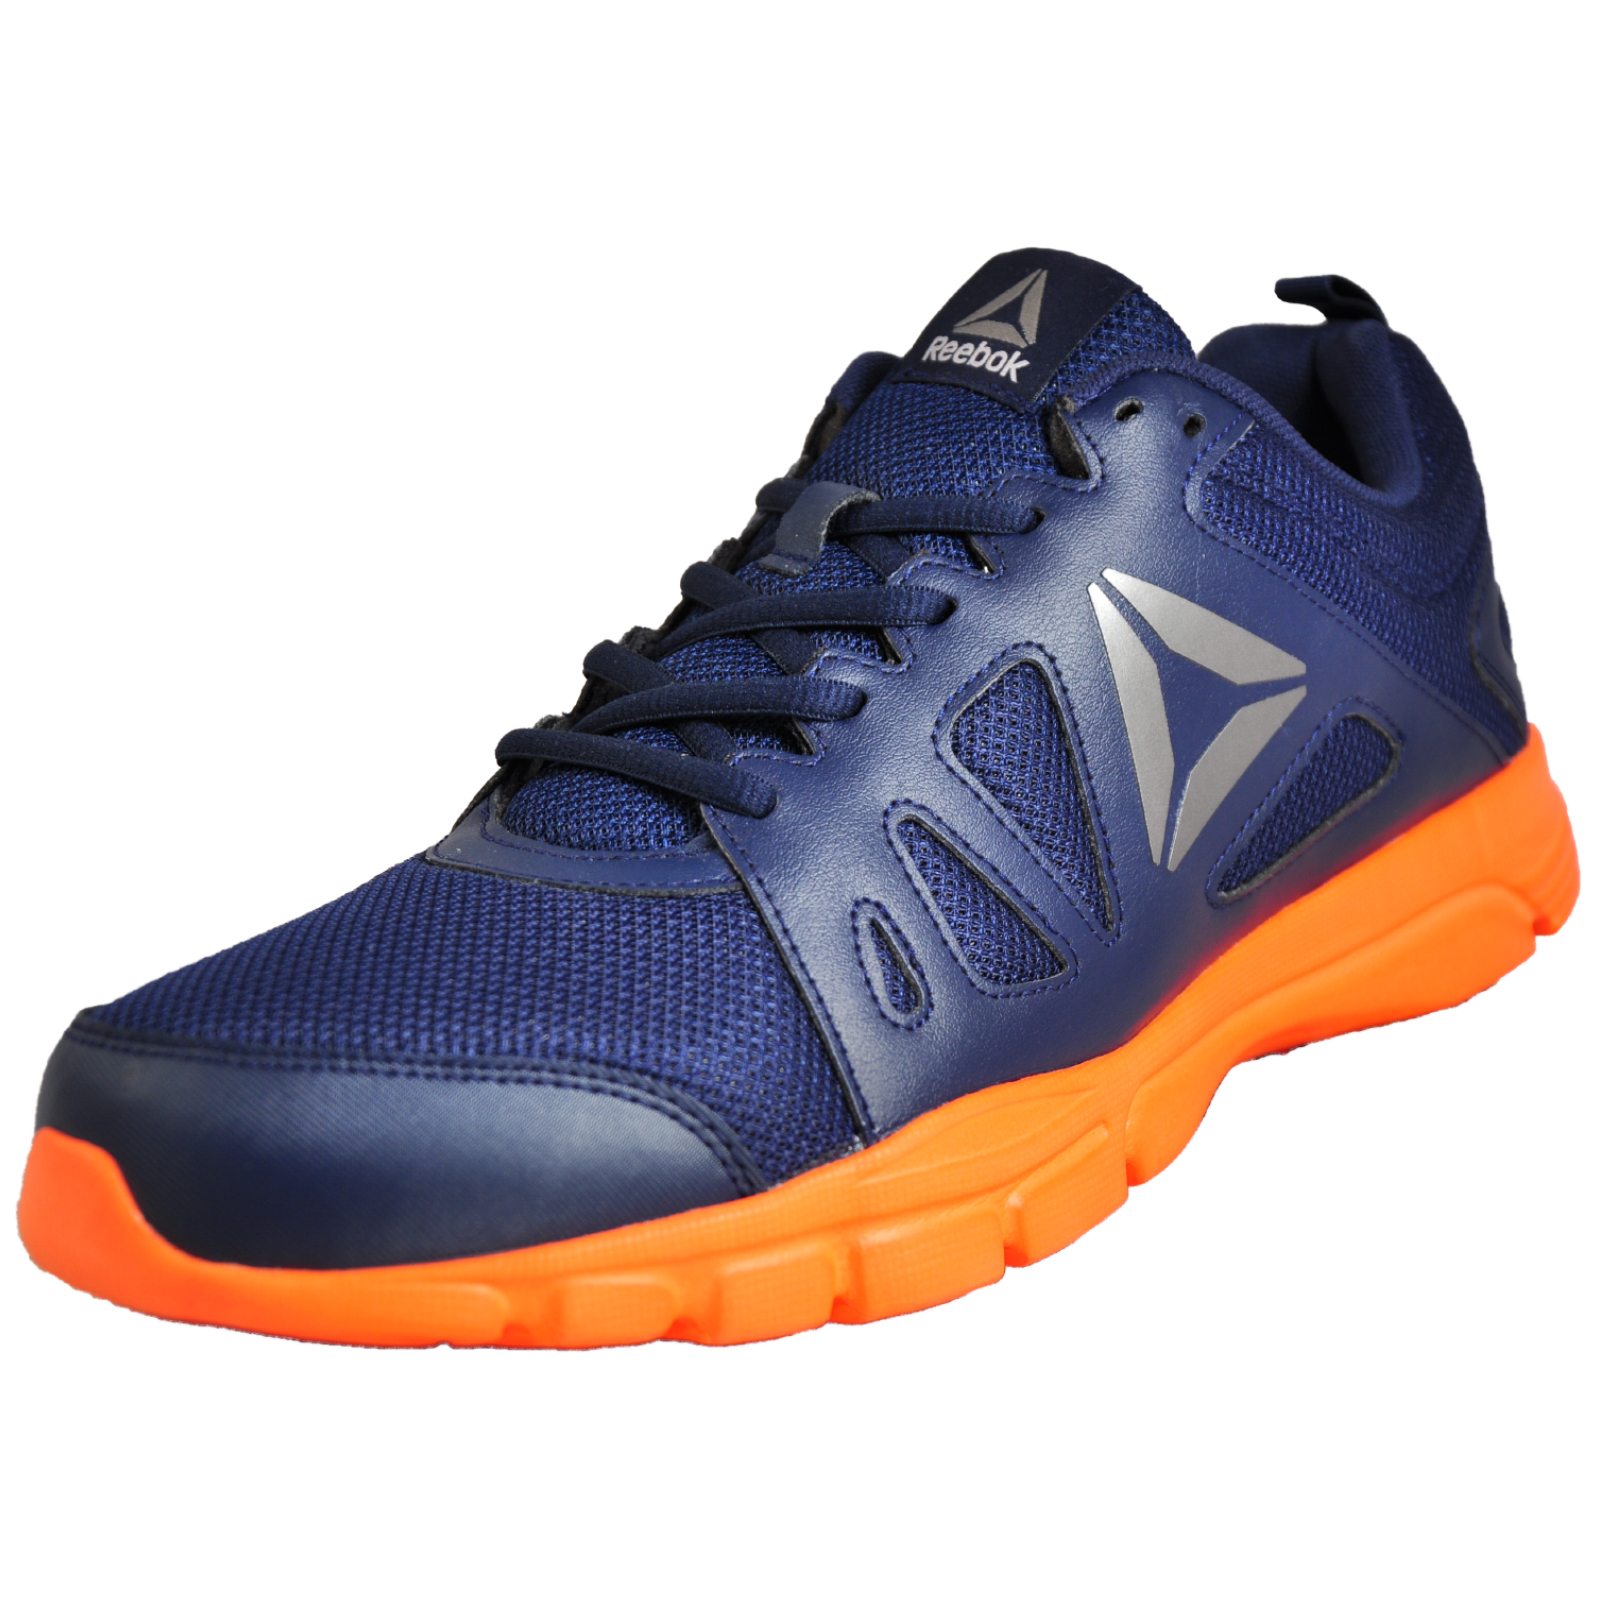 2024109403b Reebok Trainfusion Nine 2.0 Mens Running Fitness Gym Trainers UK11 Only